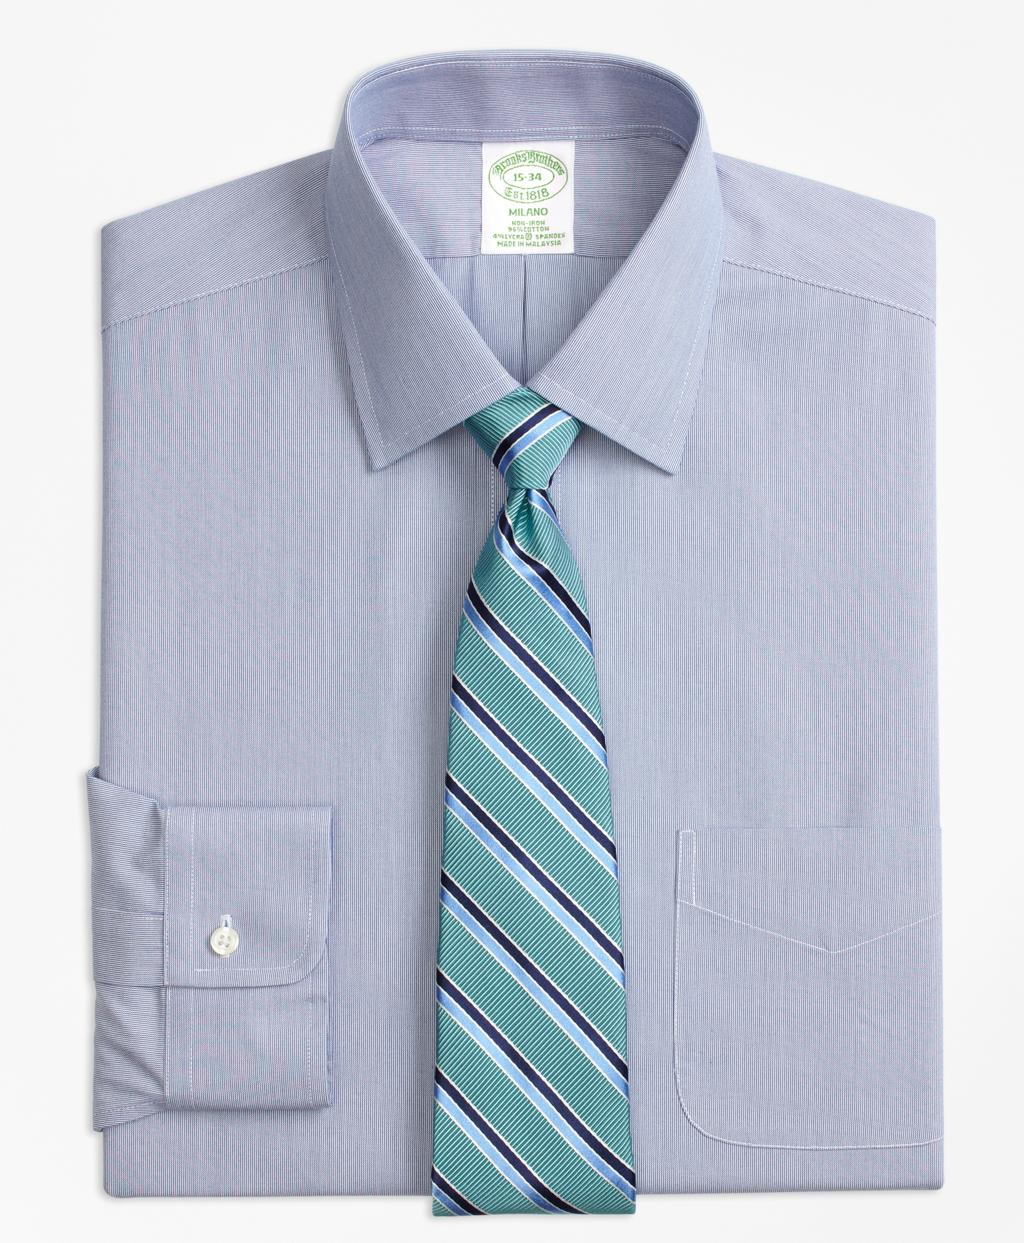 Brooks brothers stretch milano slim fit dress shirt non for Brooks brothers non iron shirts review